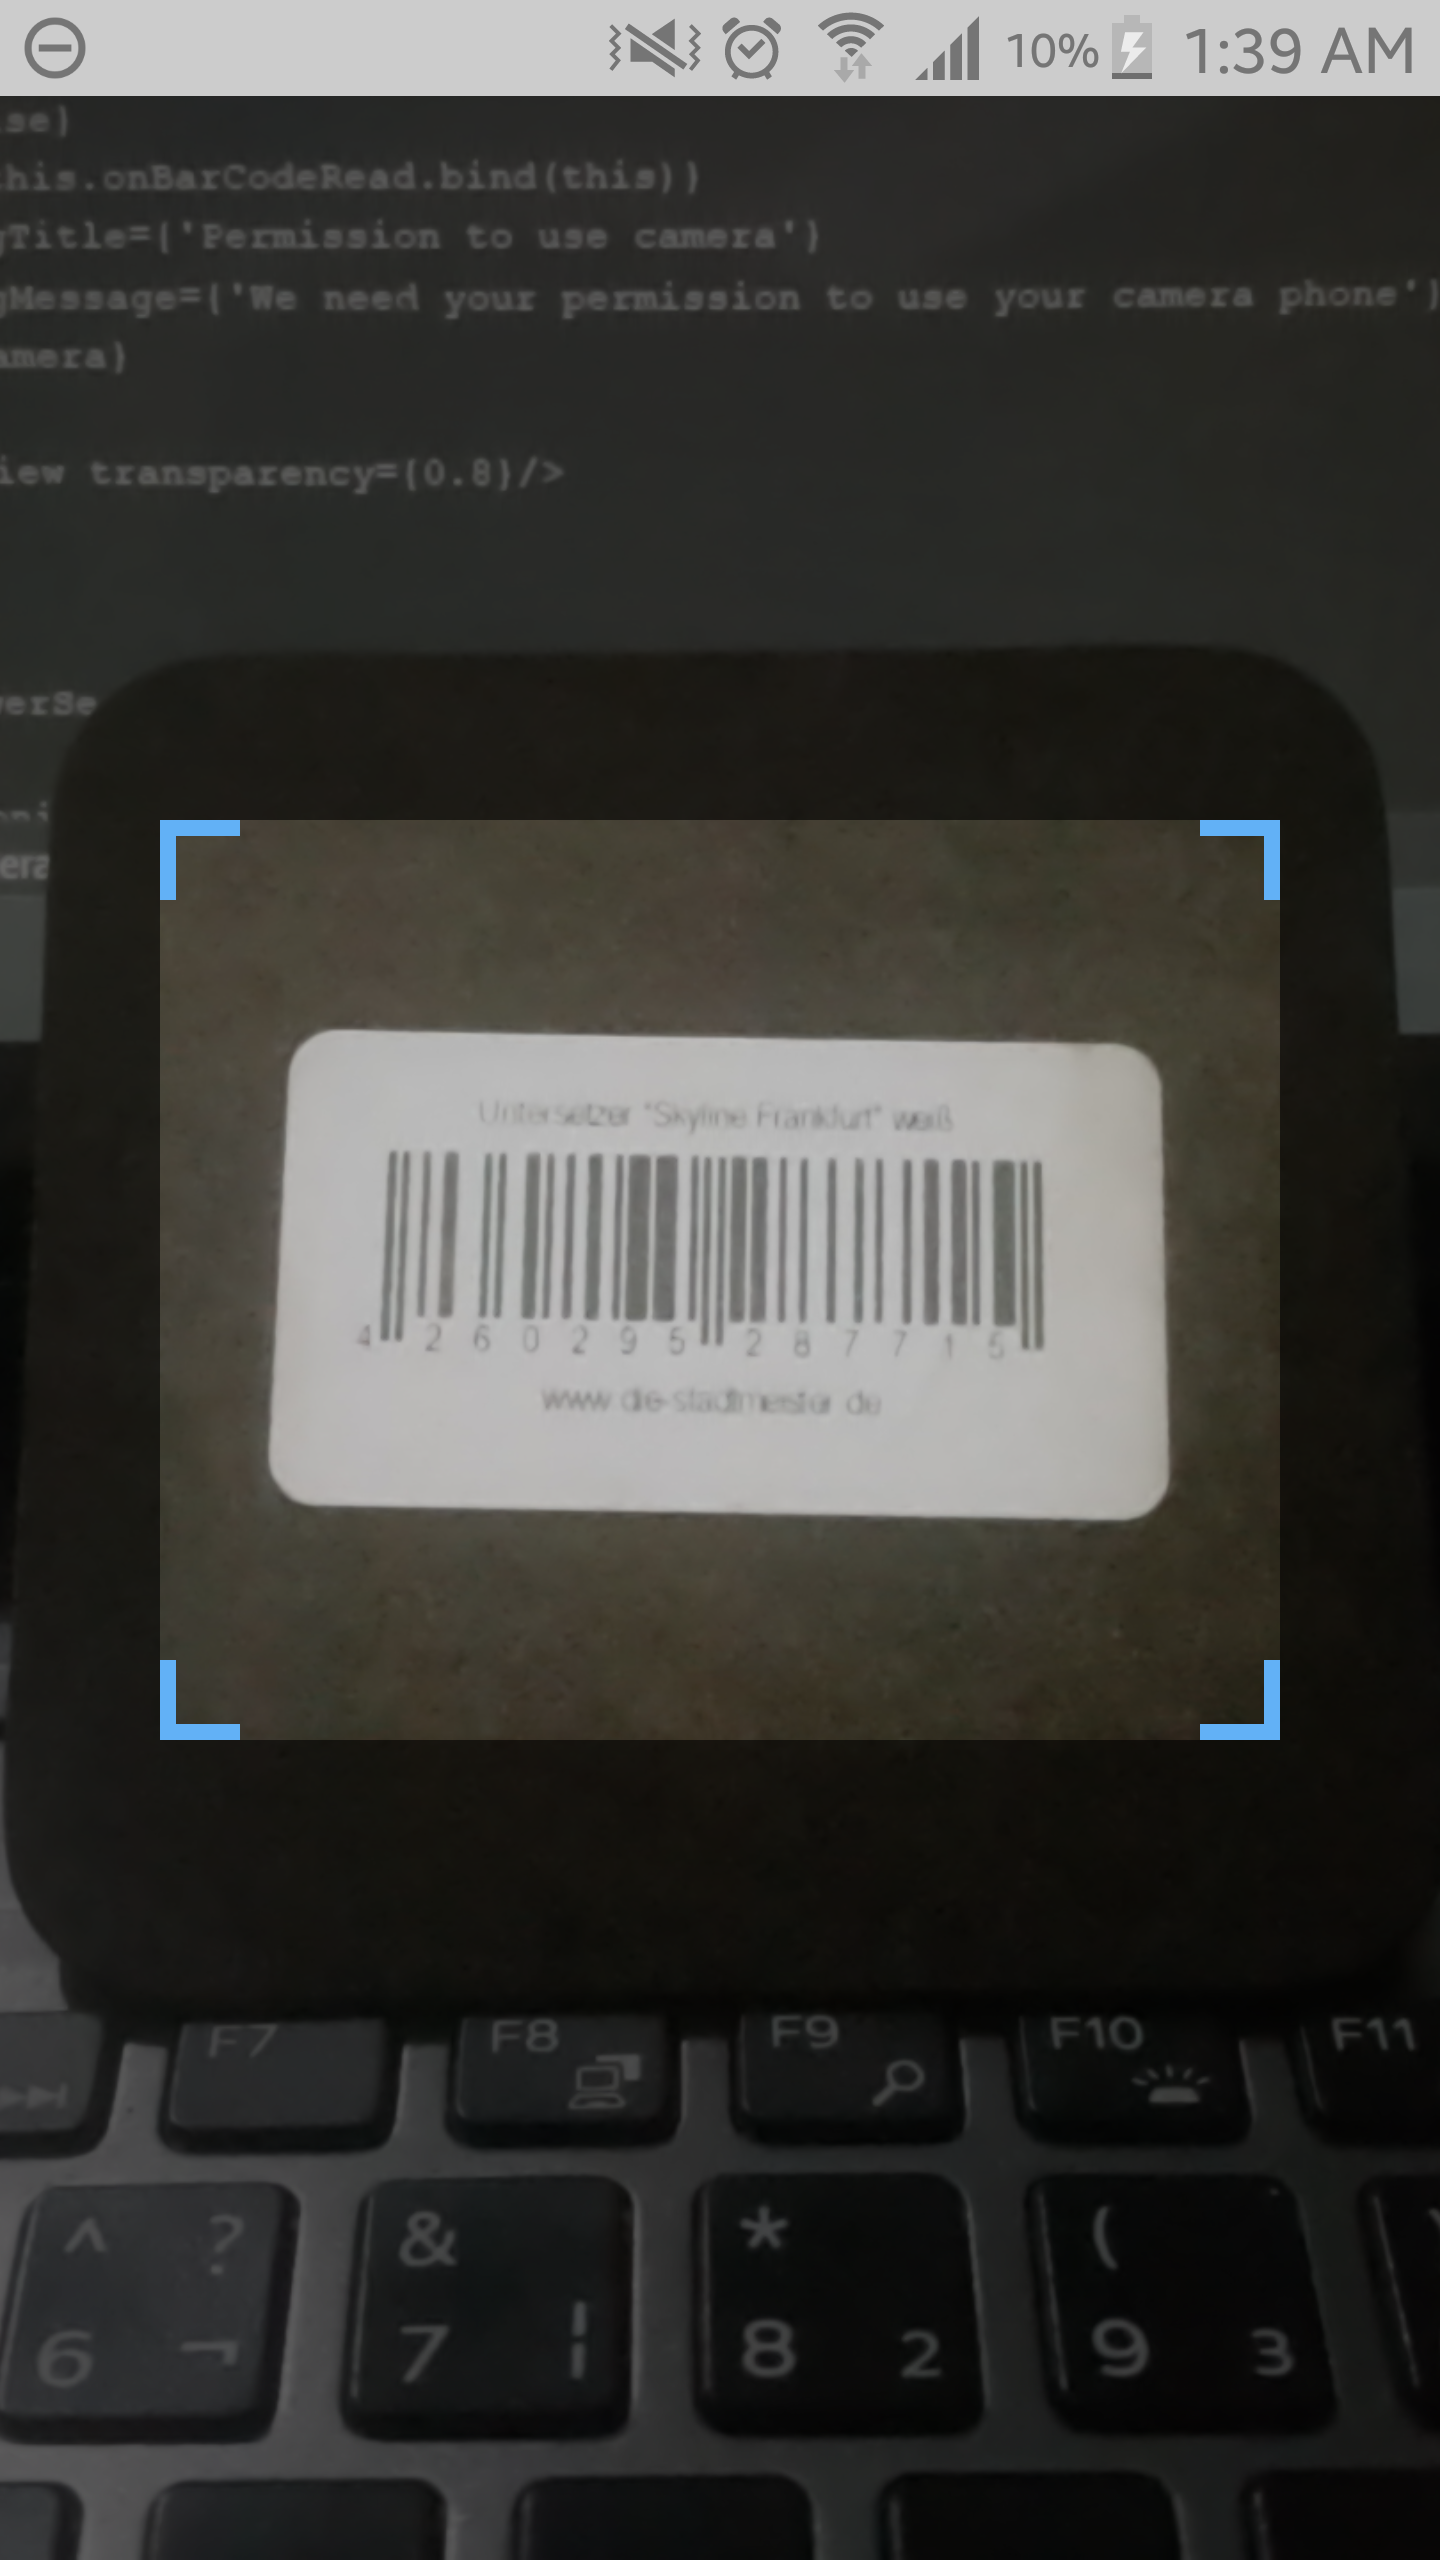 A barcode scan layout for react-native applications with